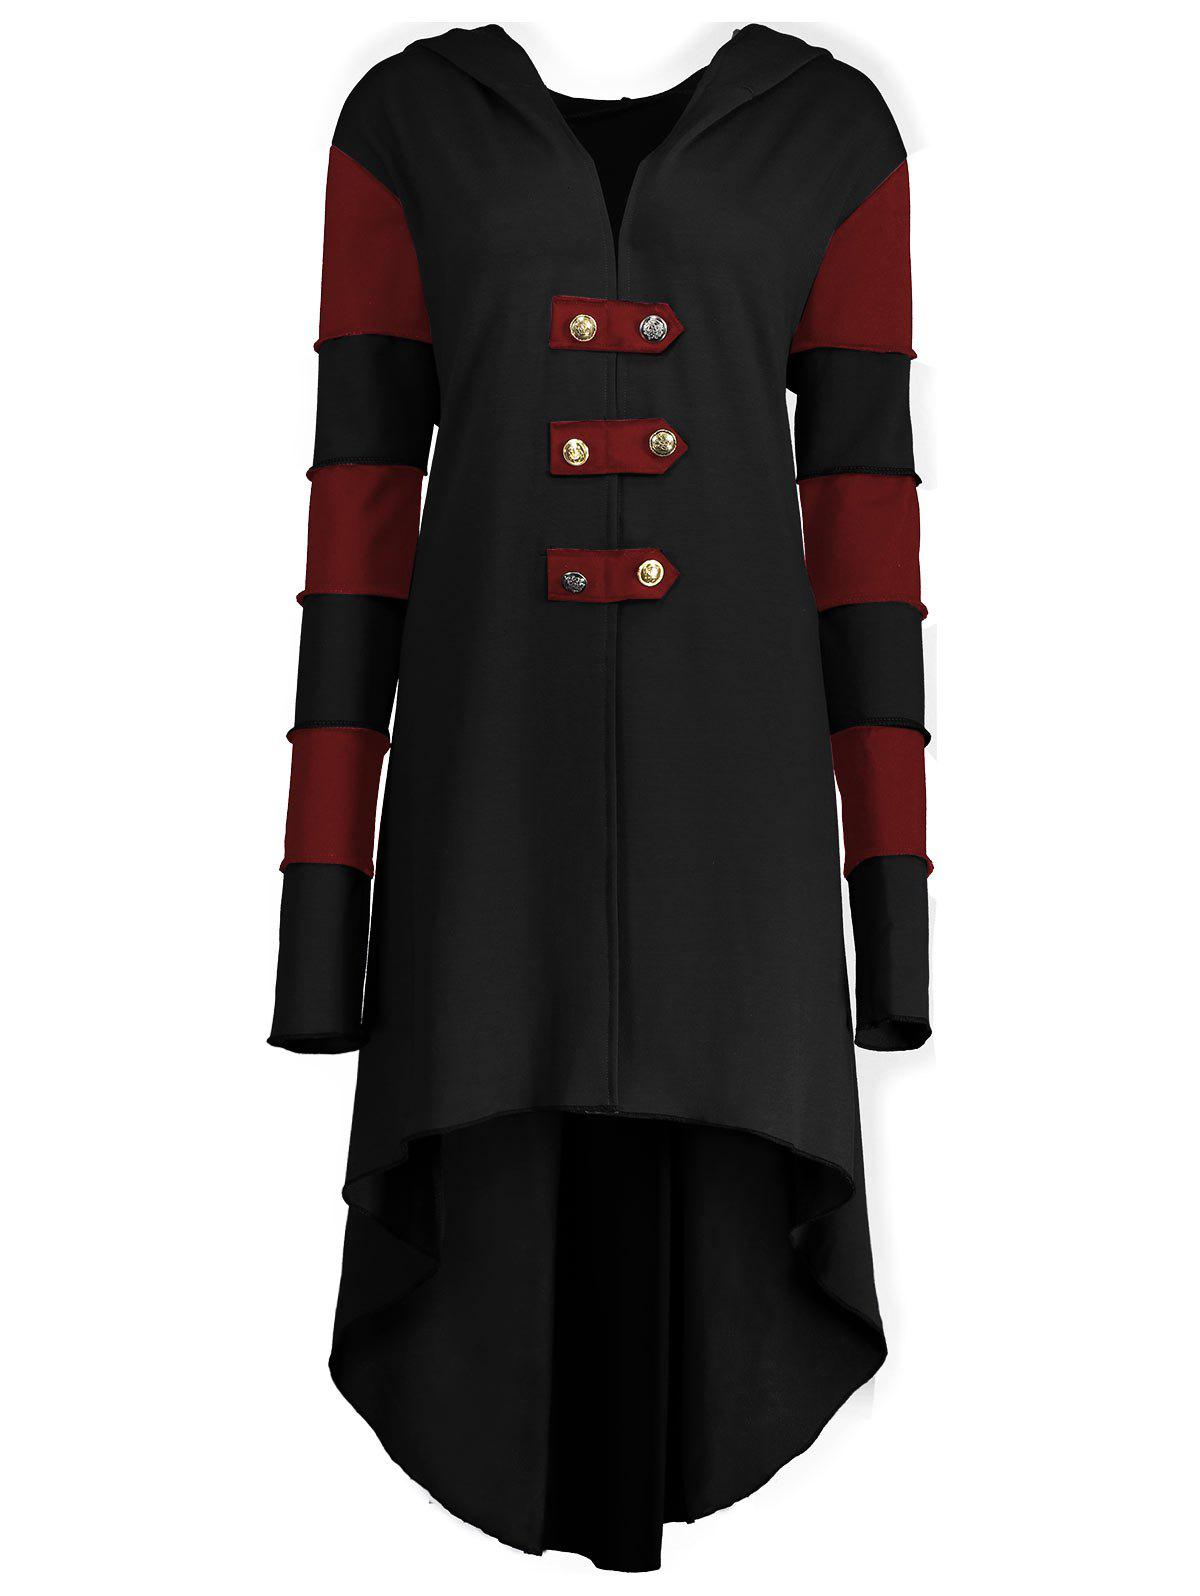 Hooded Plus Size Lace-up High Low  CoatWOMEN<br><br>Size: 2XL; Color: BLACK&amp;RED; Clothes Type: Others; Material: Polyester,Spandex; Type: Asymmetric Length; Shirt Length: Long; Sleeve Length: Full; Collar: Hooded; Pattern Type: Others; Style: Fashion; Season: Fall,Winter; Weight: 0.6200kg; Package Contents: 1 x Coat;